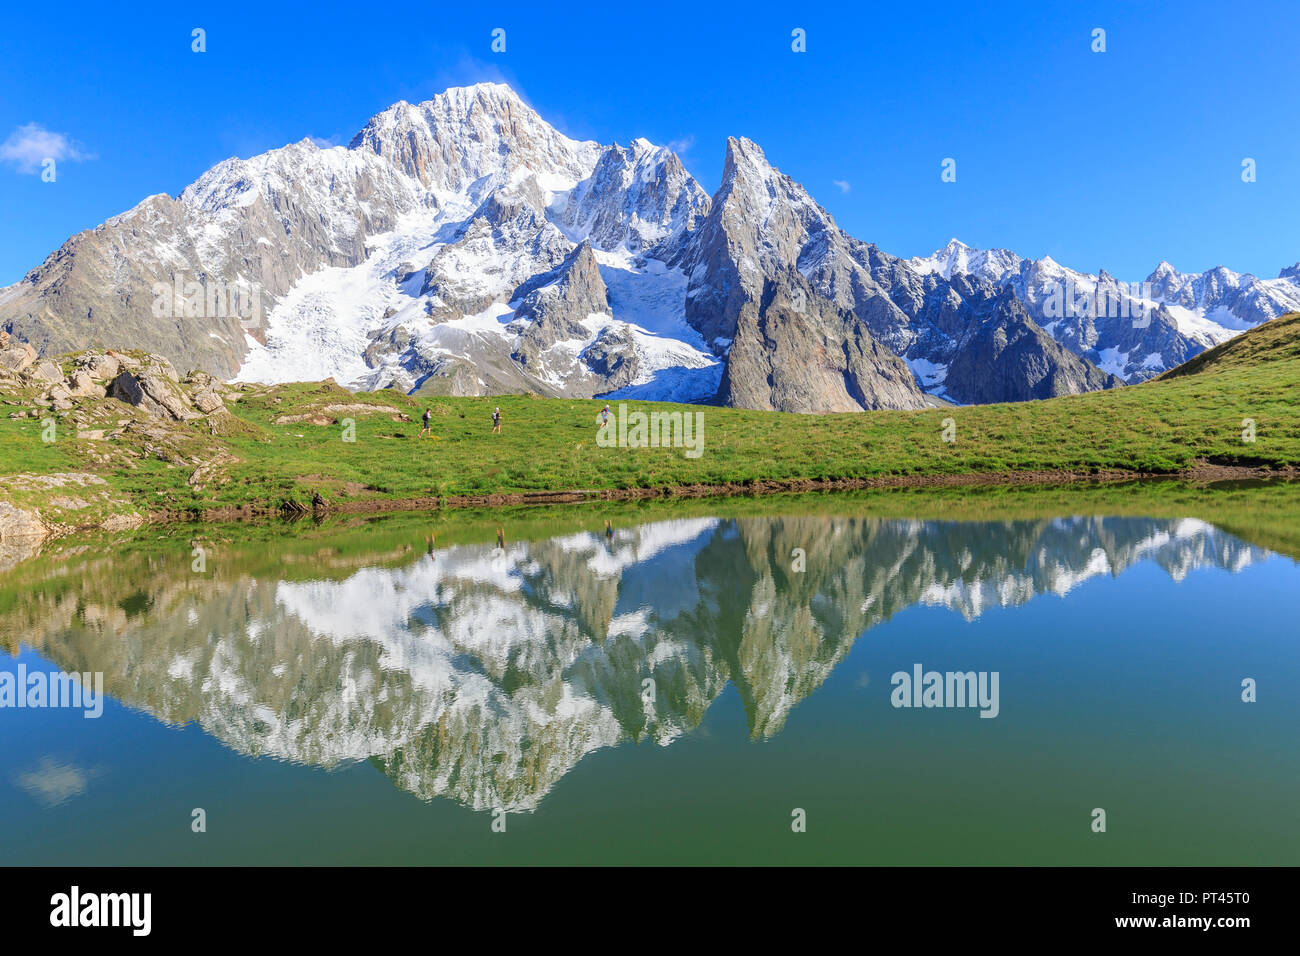 Trail runners in transit at the Lac des Vesses, Vesses Lake, Veny Valley, Courmayeur, Aosta Valley, Italy, Europe - Stock Image